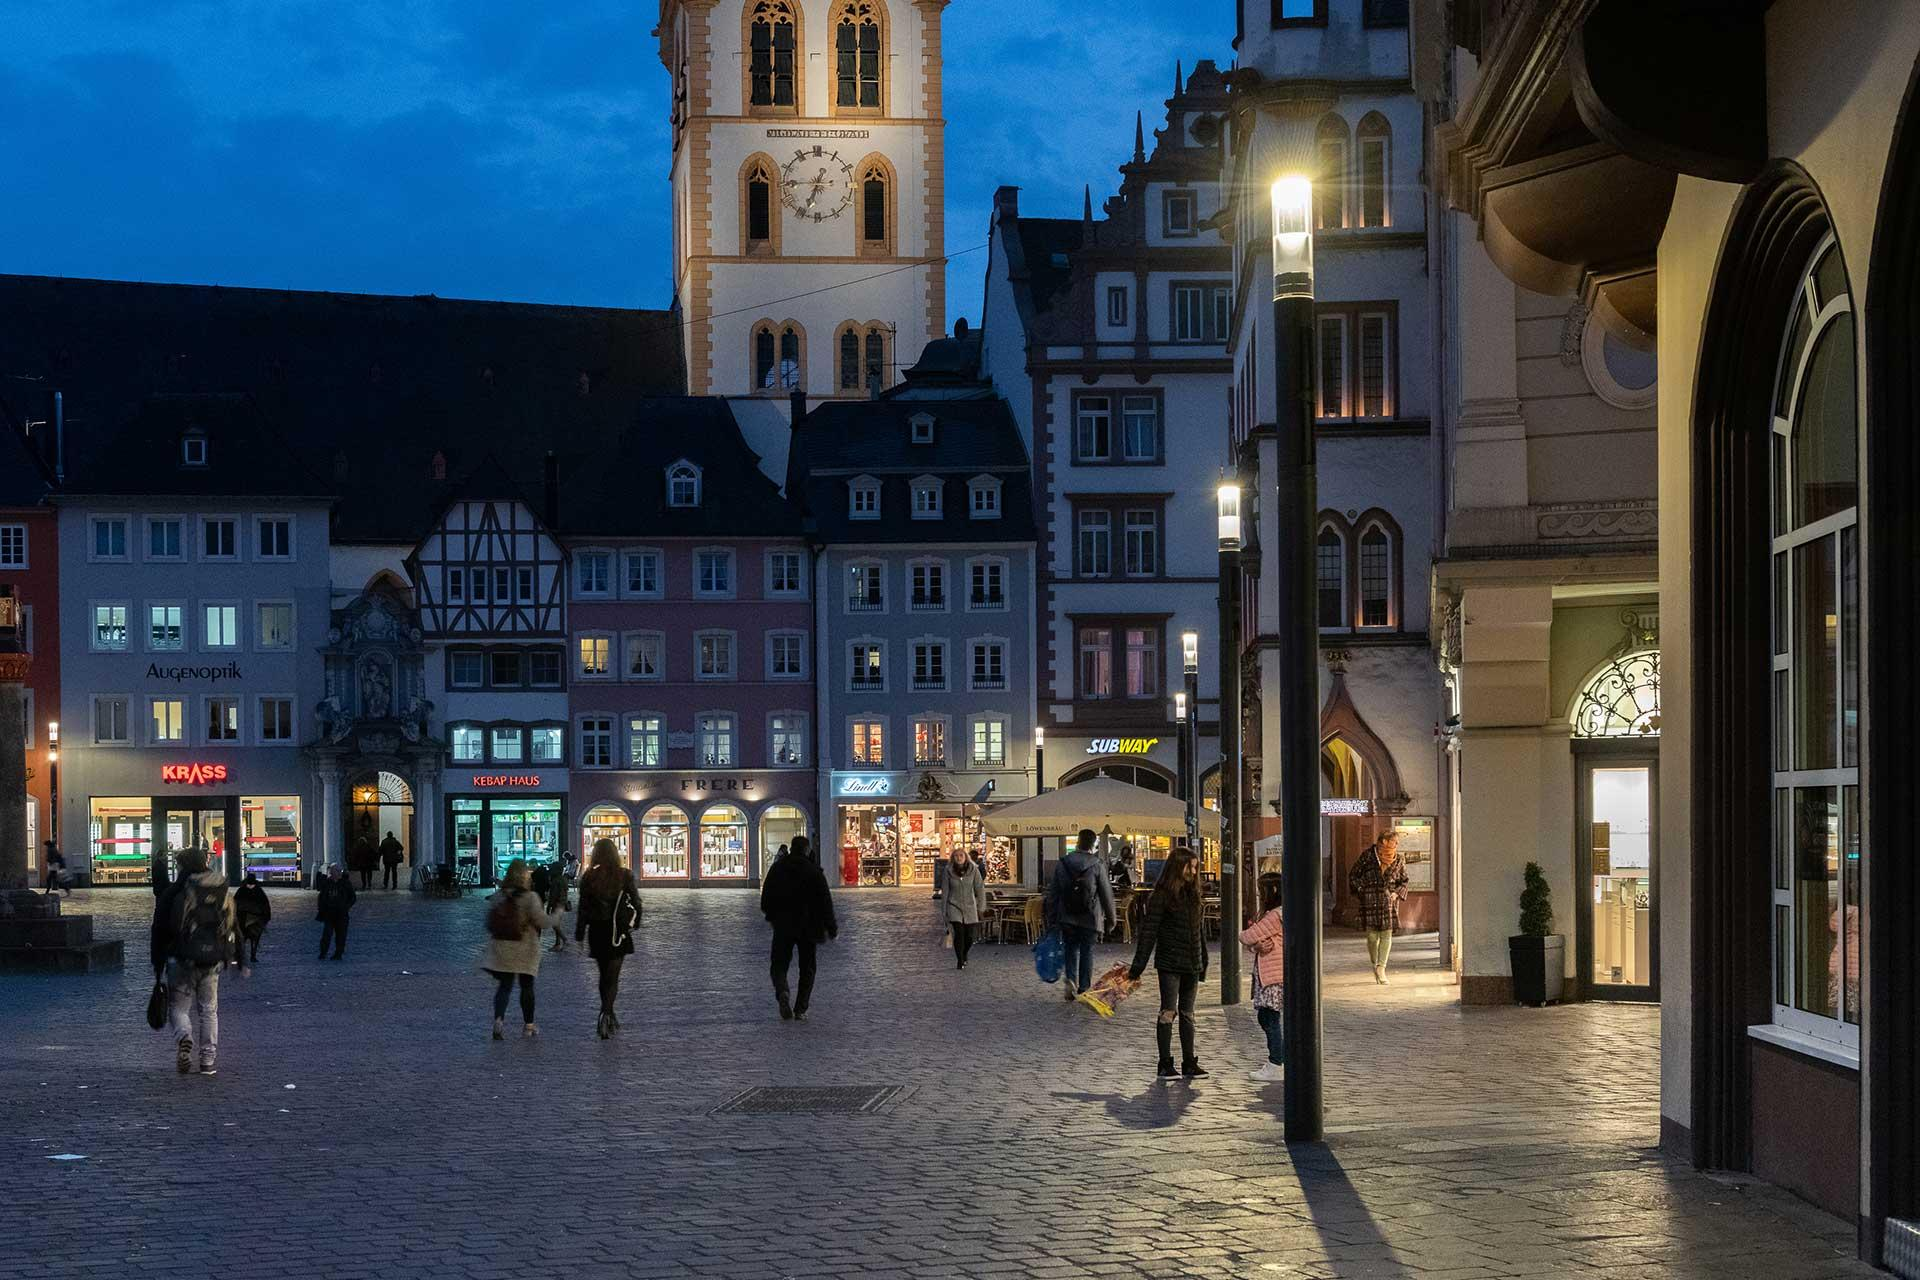 Shuffle delivers a gentle white light for a safe and enjoyable nocturnal experience in Trier